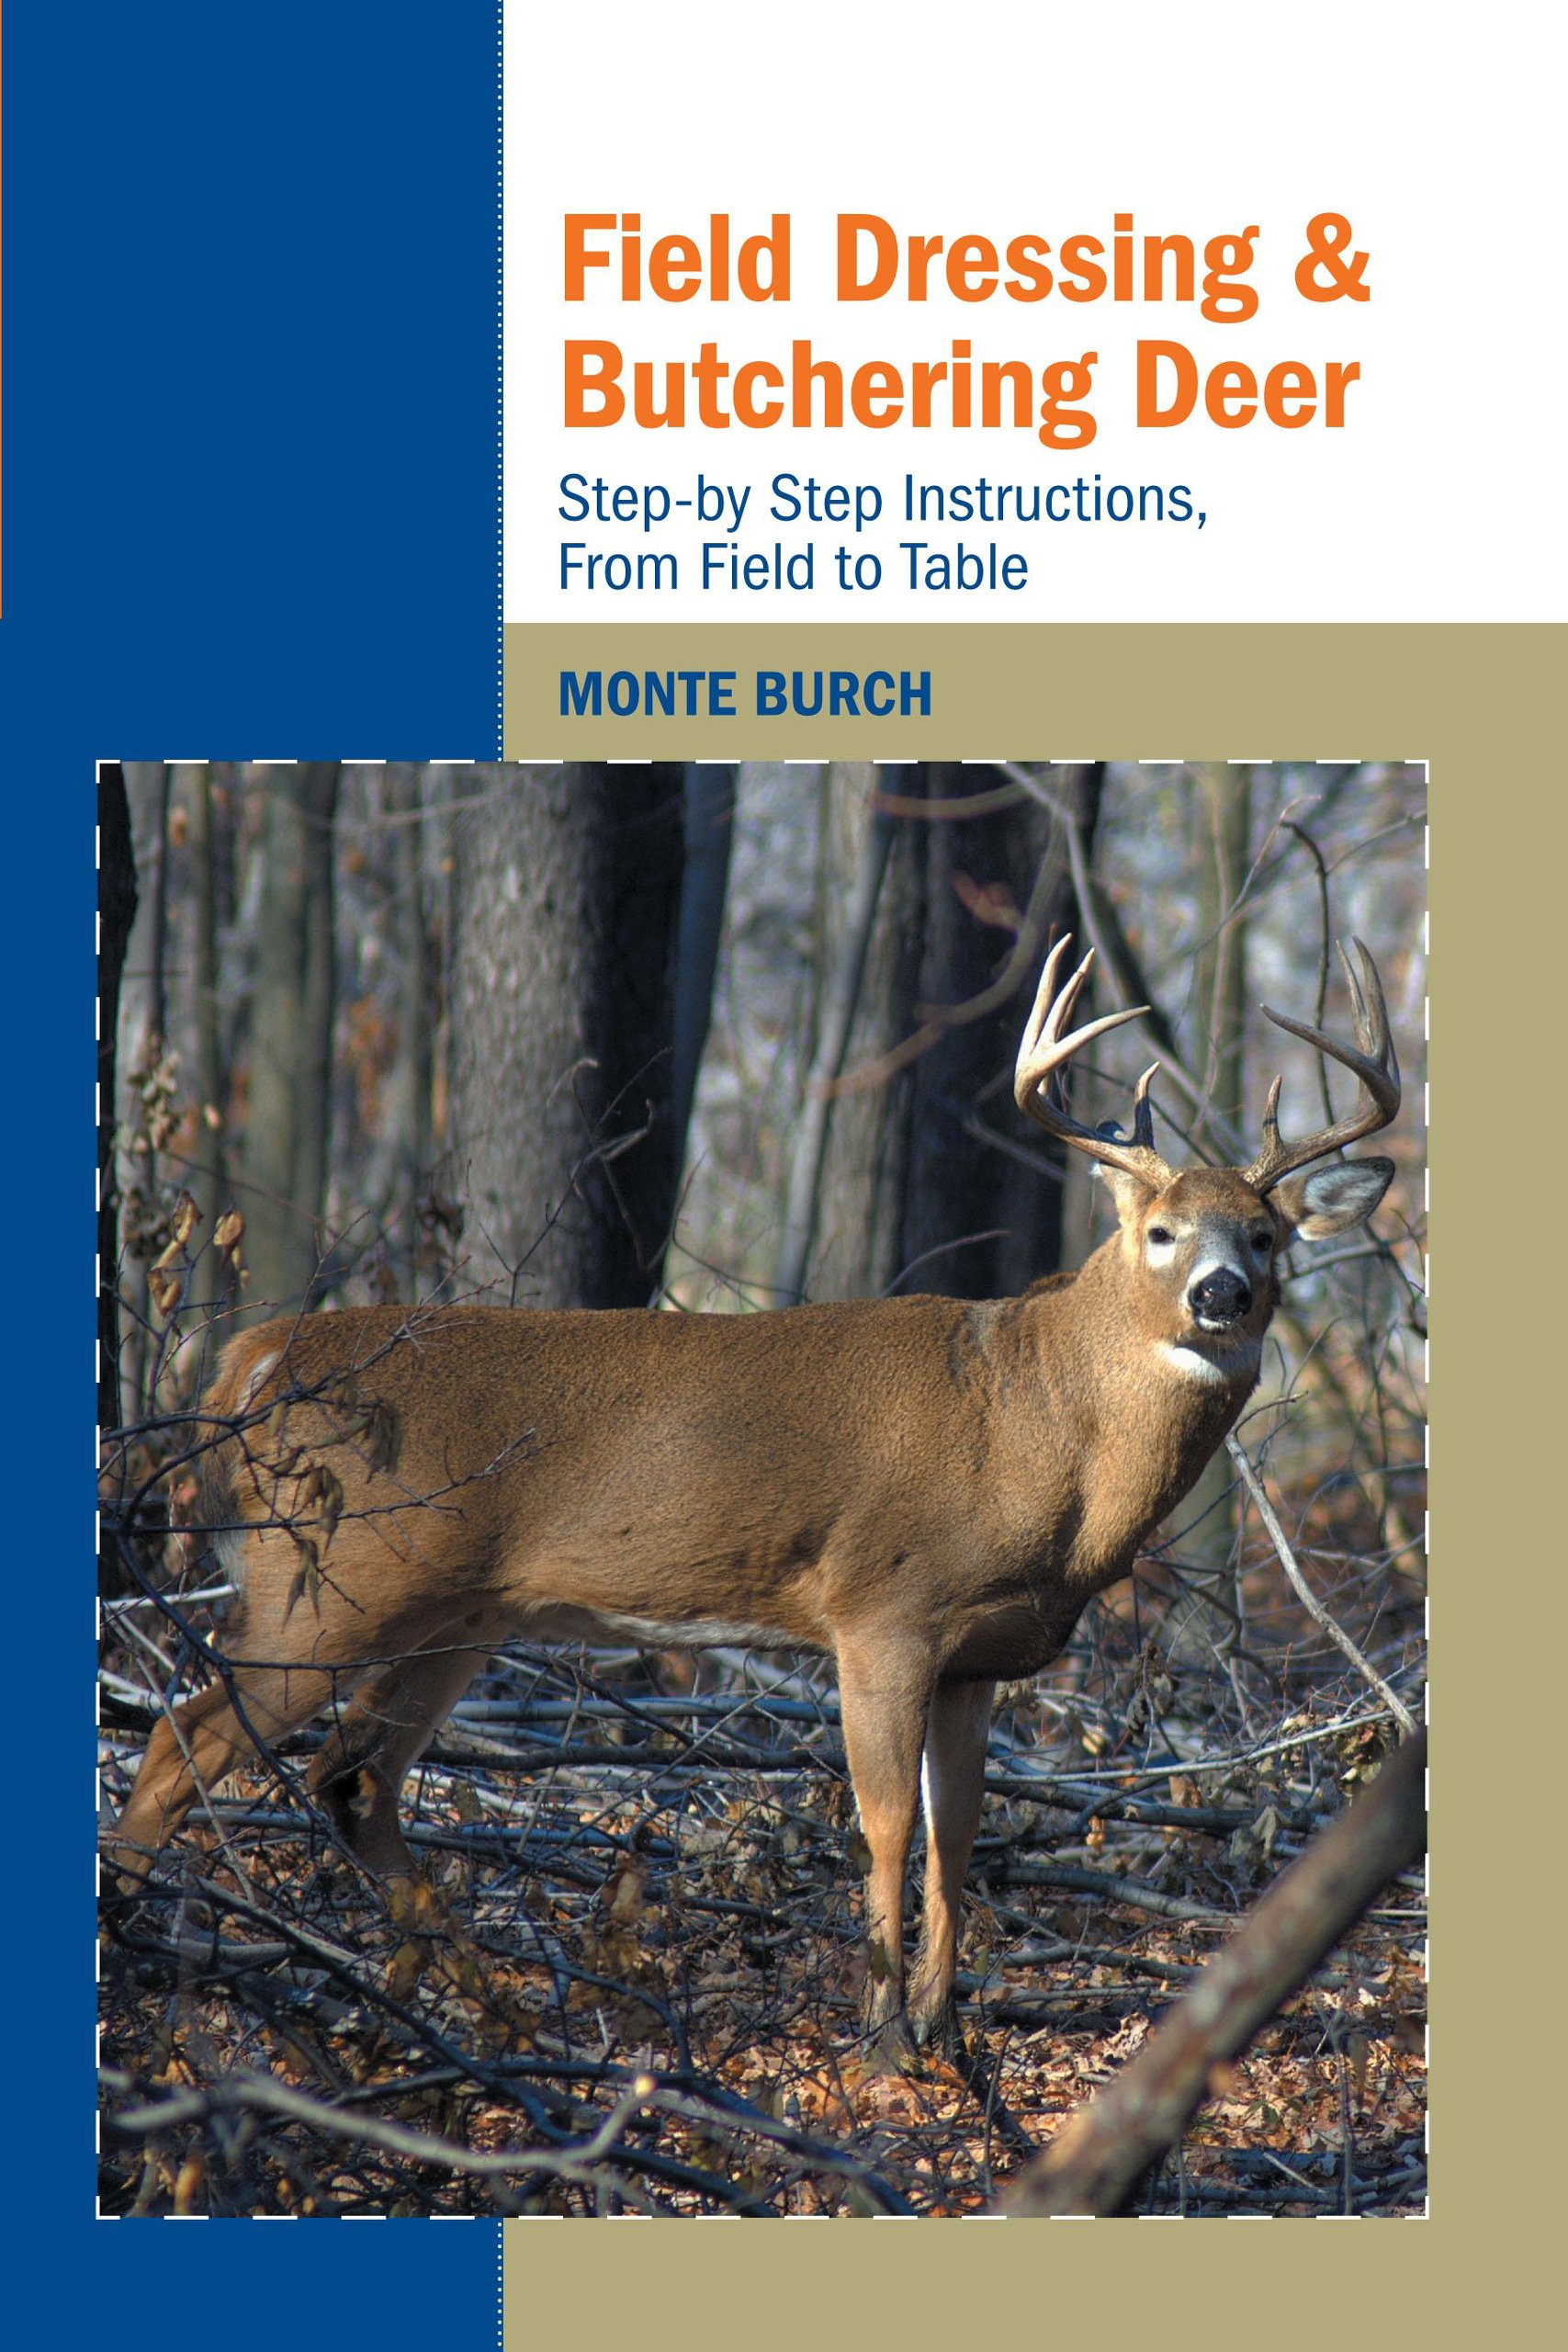 field dressing and butchering deer step by step instructions, fromfollow the author